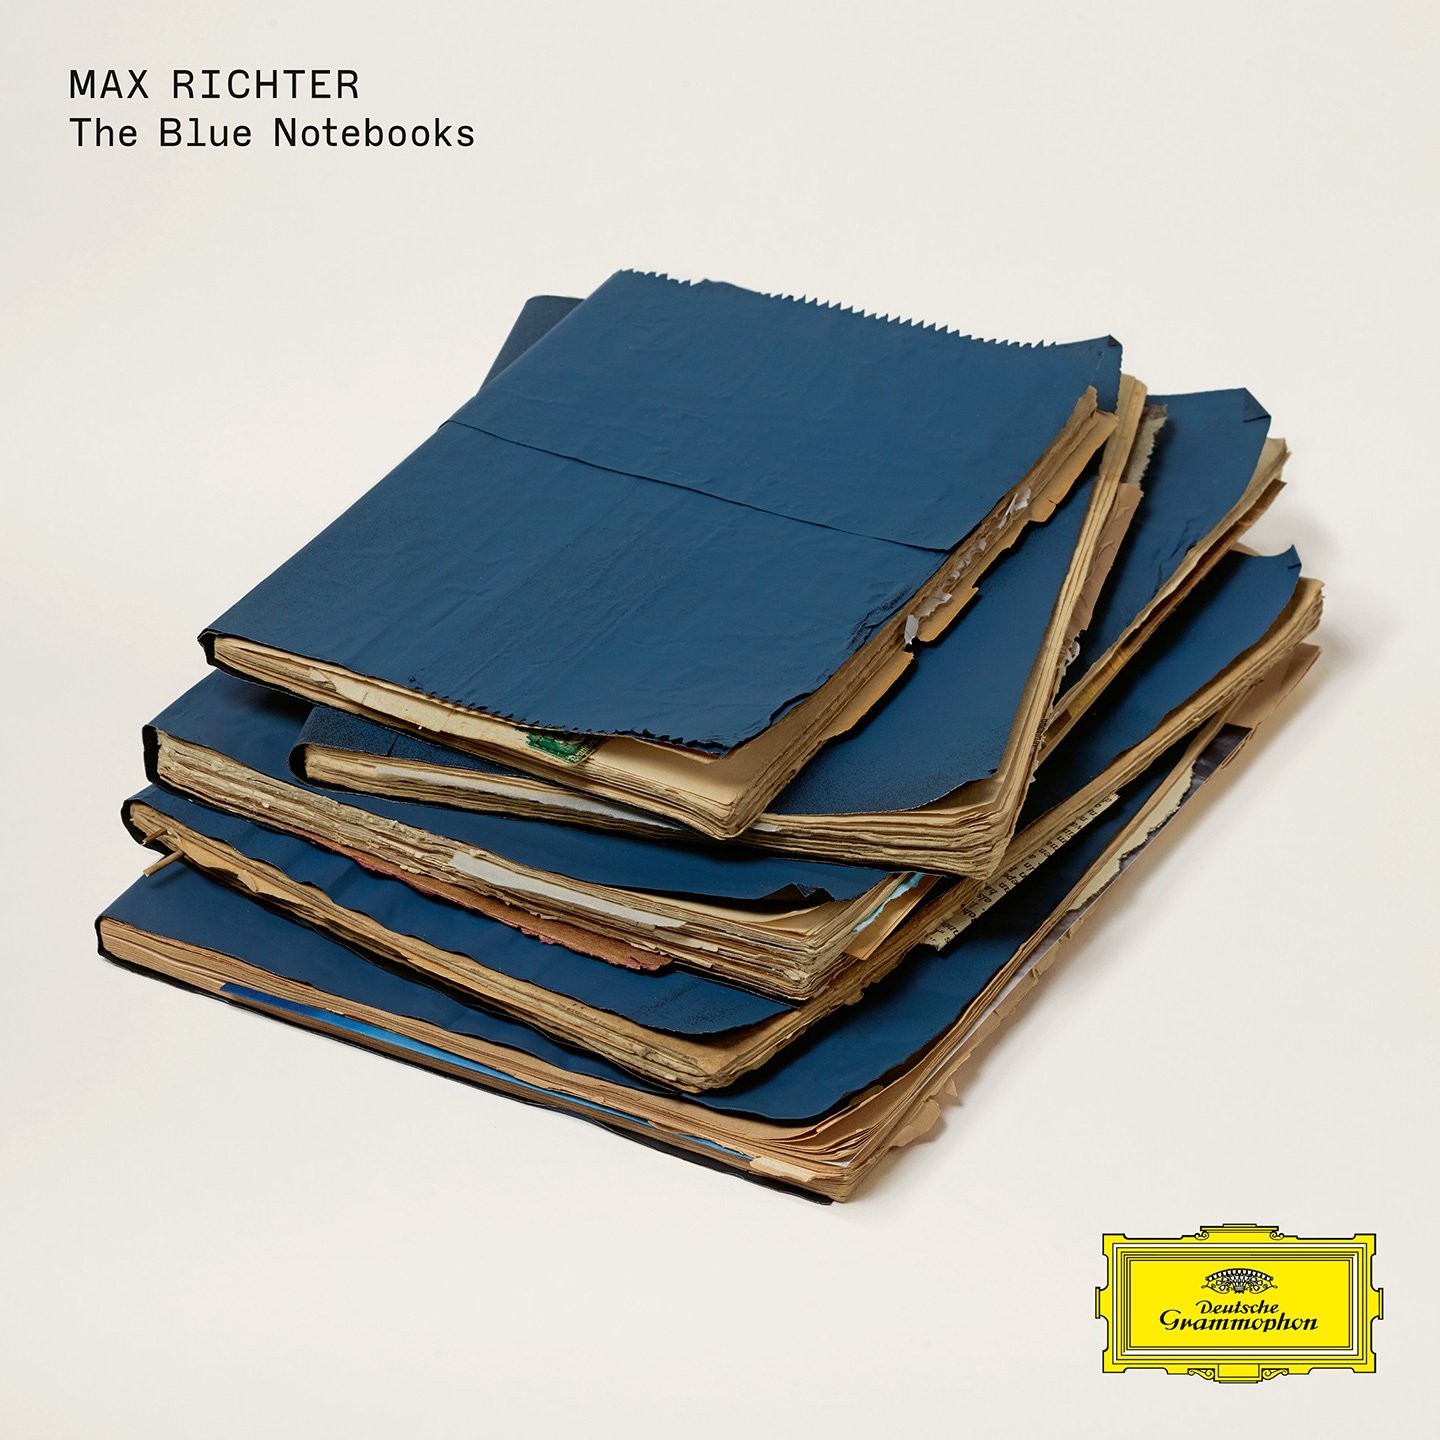 The Blue Notebooks by Max Richter image